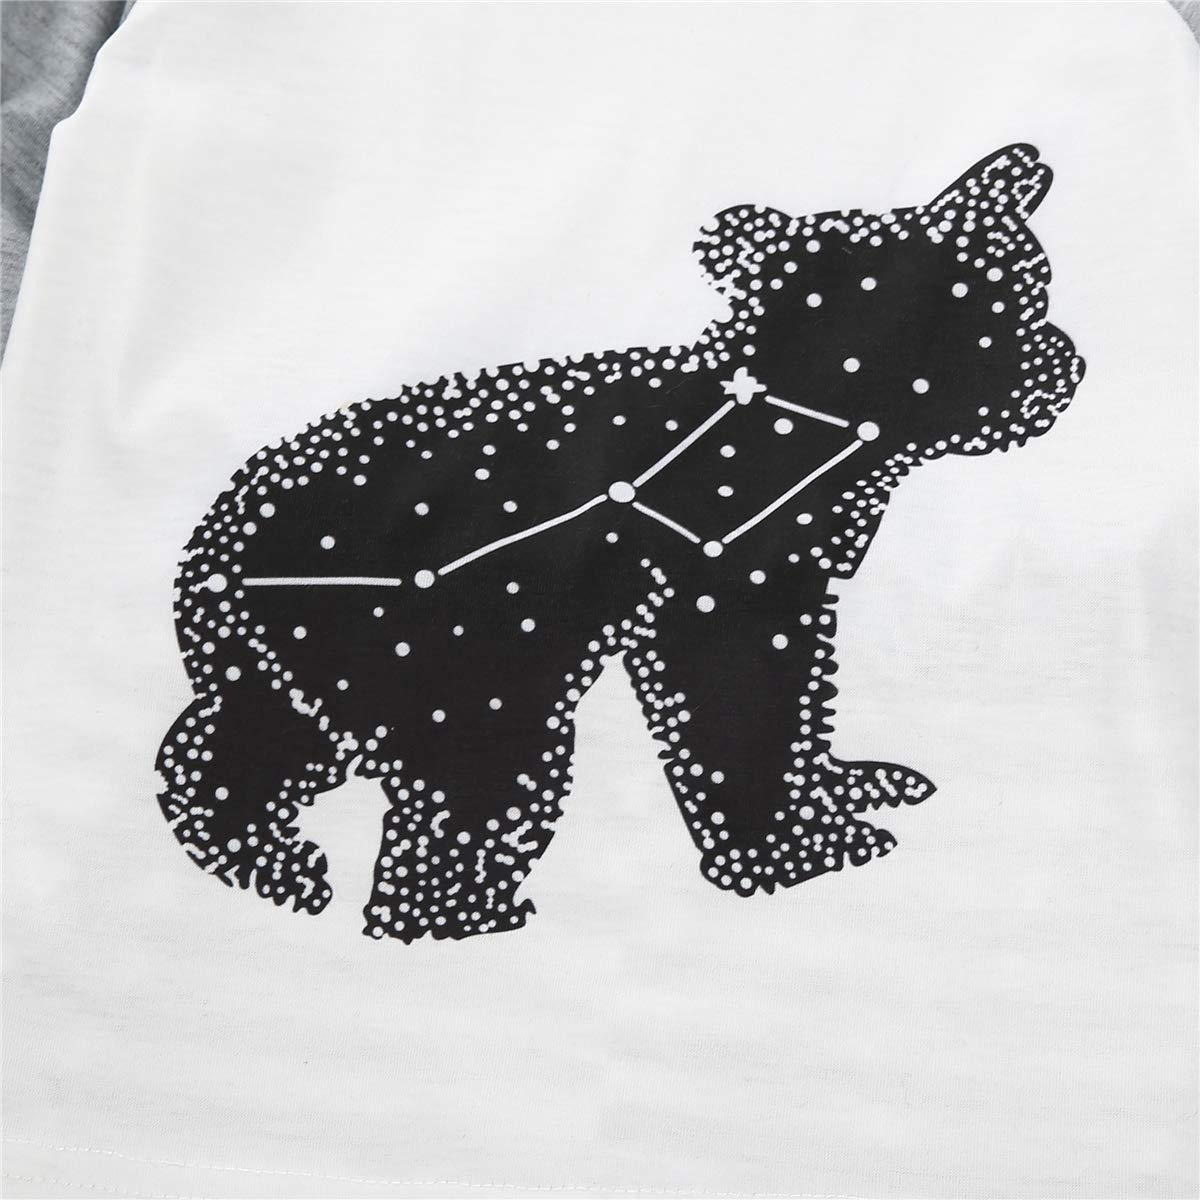 Dreshion Family Matching Pajamas Set Stripe Black Bear Sleepwear for Dad,Mom,Baby Kid